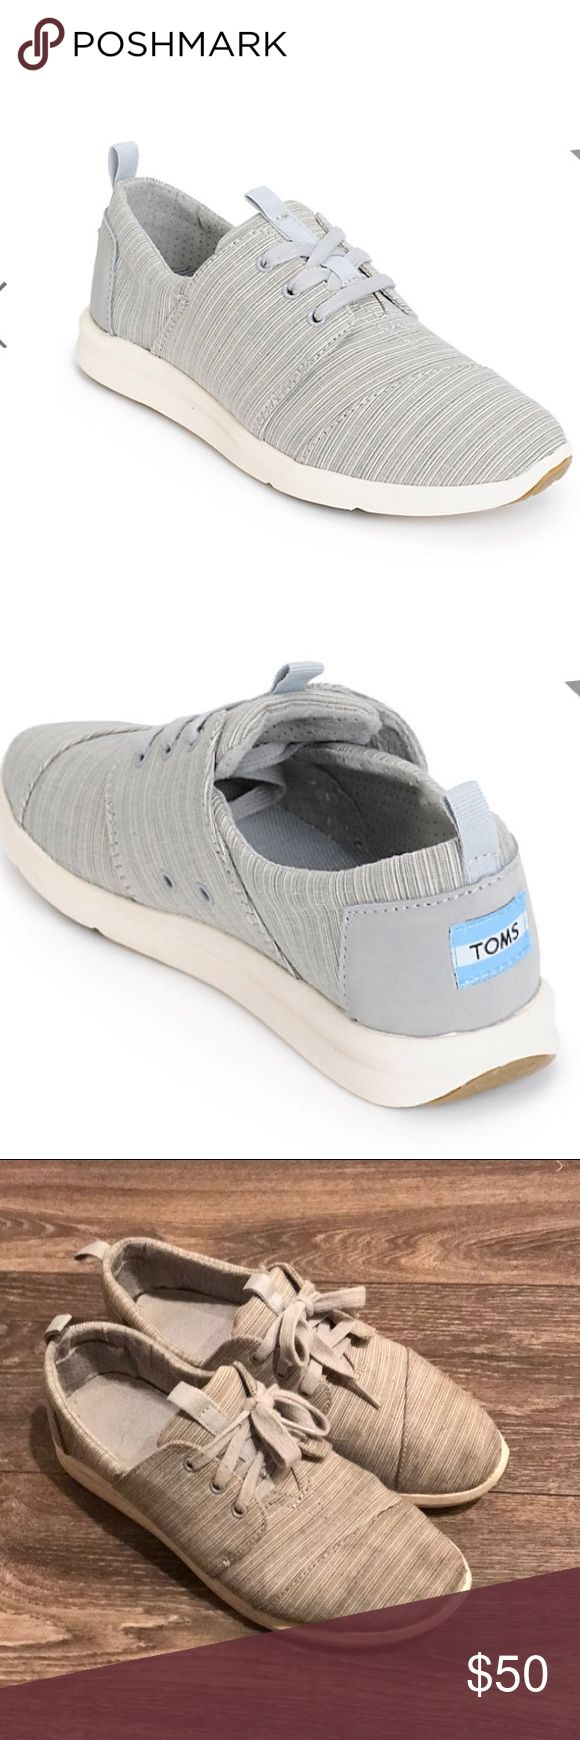 Toms del ray sneakers size 8 vapor blue Toms del ray sneakers size 8 vapor blue. Light blue gray striped color. Color no longer available in stores! Lightly worn but in excellent condition! Will consider all offers. Toms Shoes Athletic Shoes